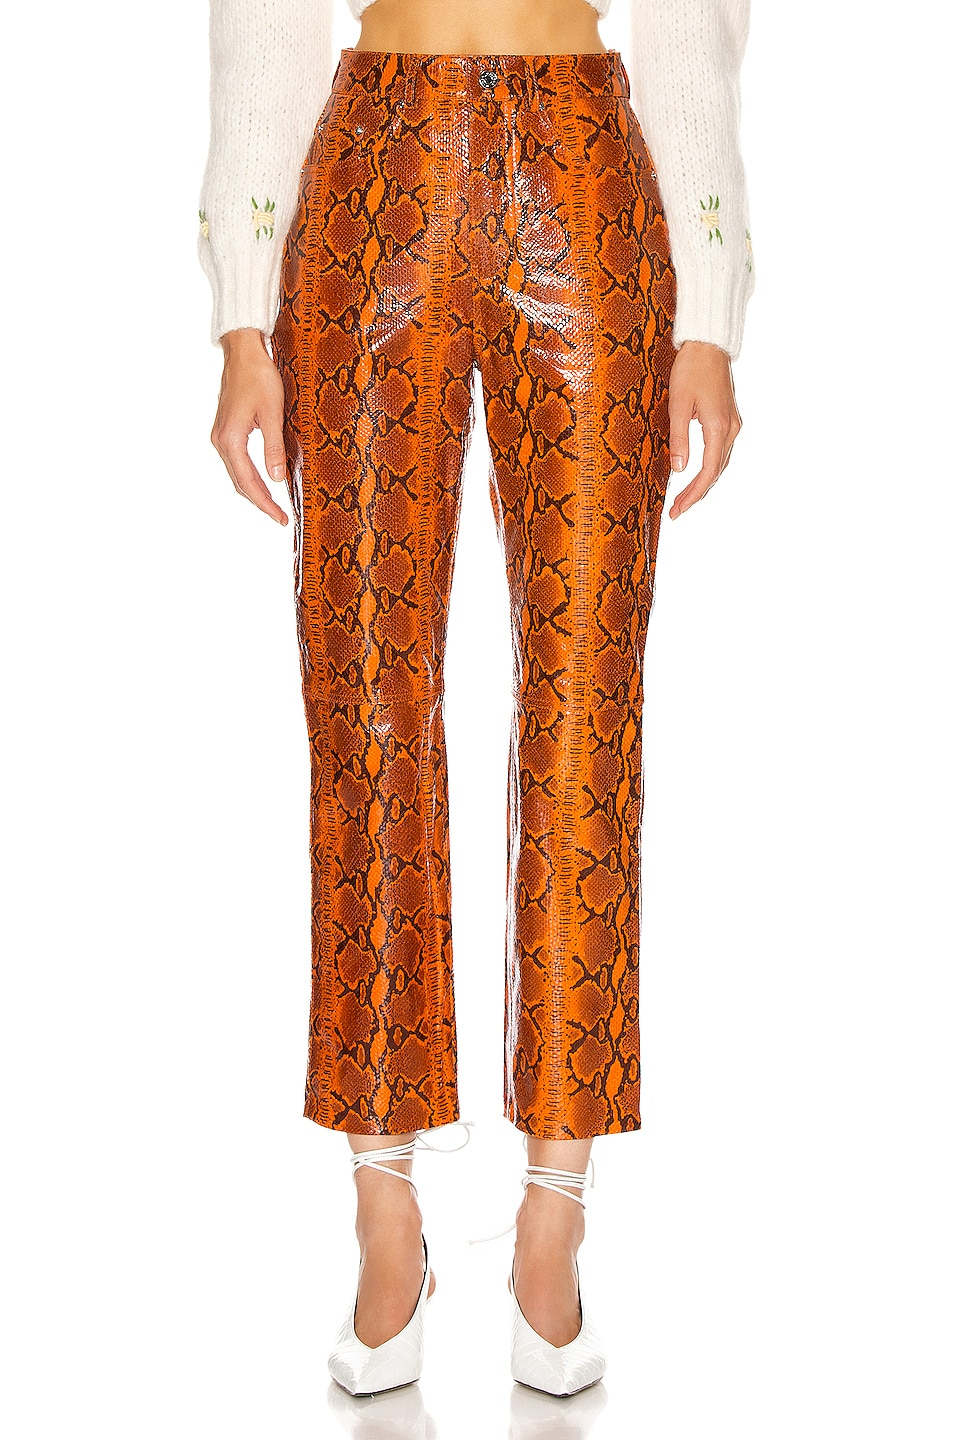 Image 1 of GRLFRND Shiloh Leather Pant in Orange Snake